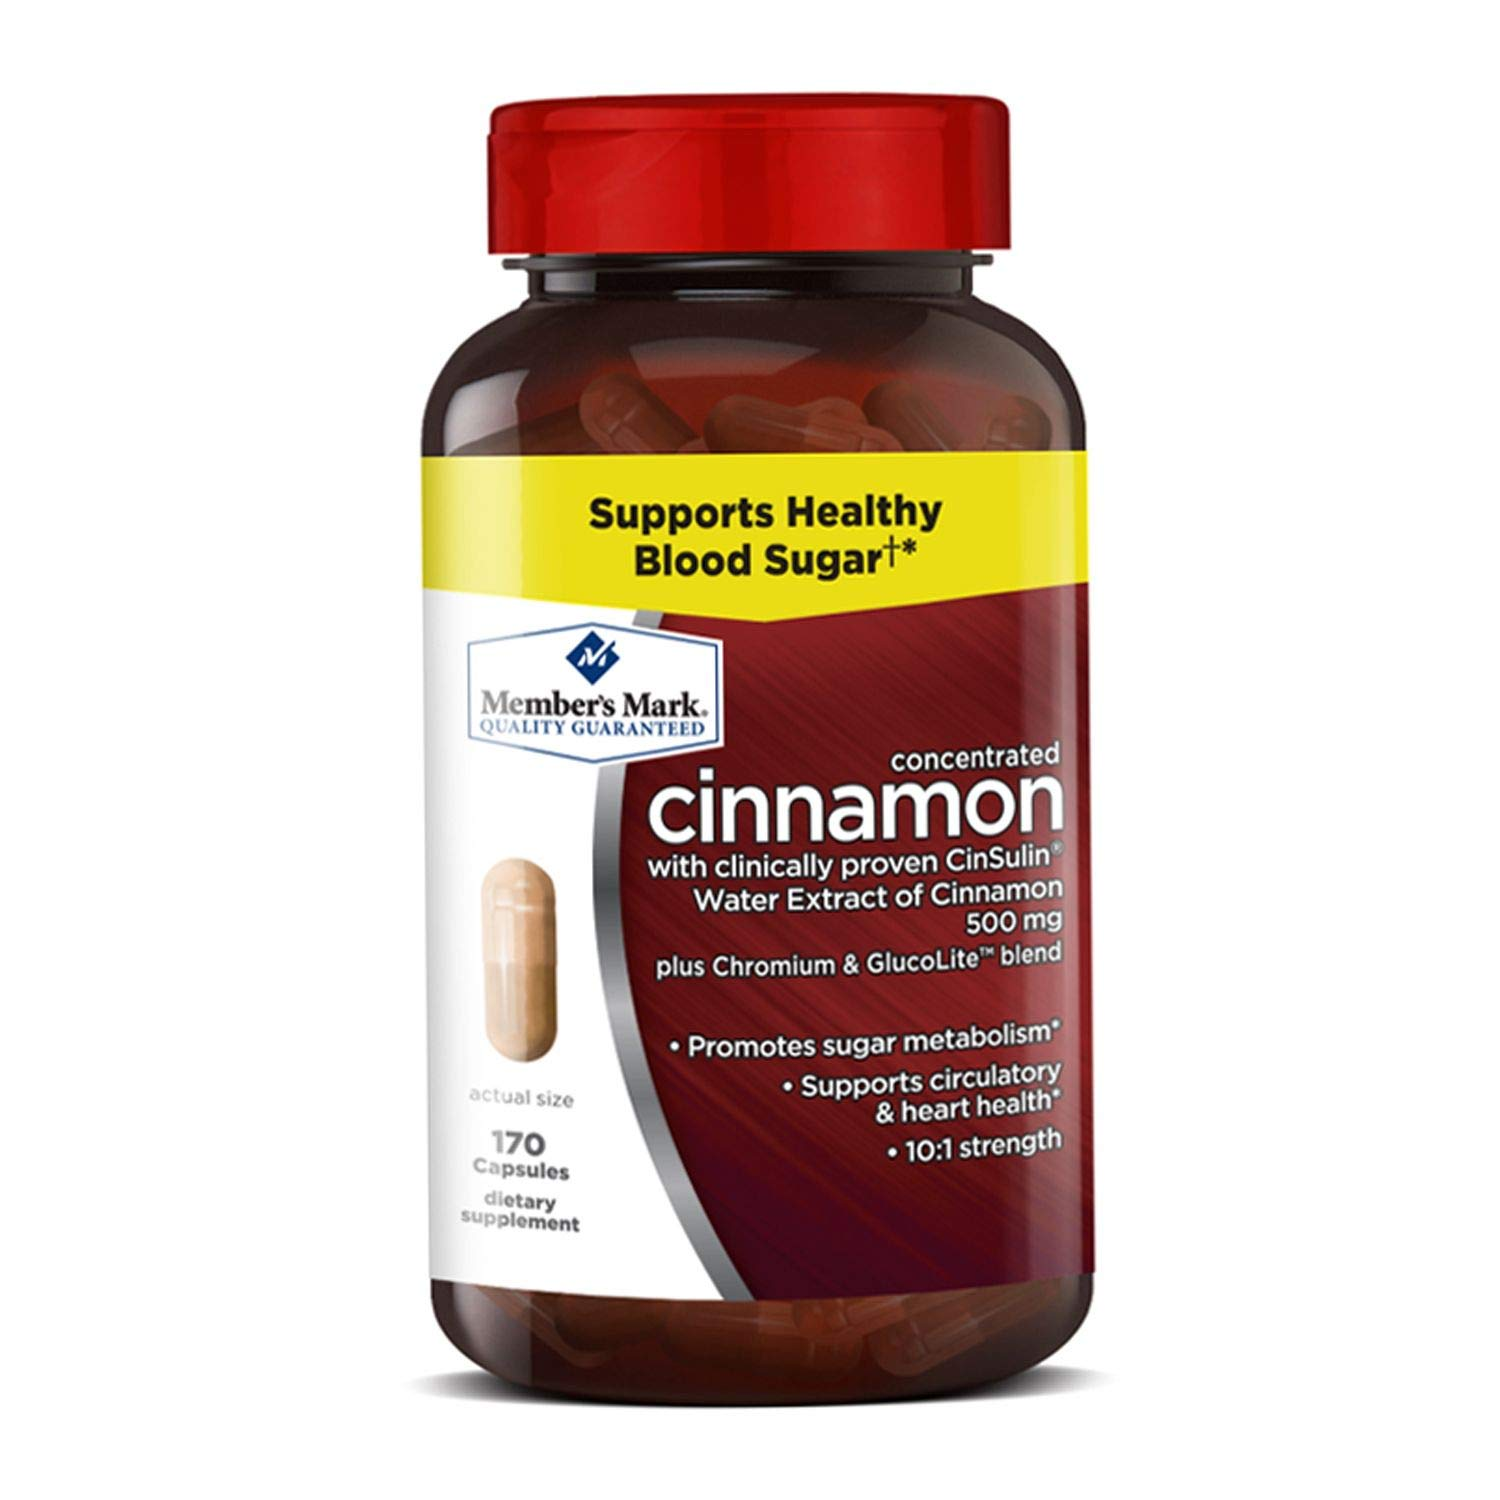 Member's Mark 500mg Cinnamon Dietary Supplement (170 ct.) (pack of 2)